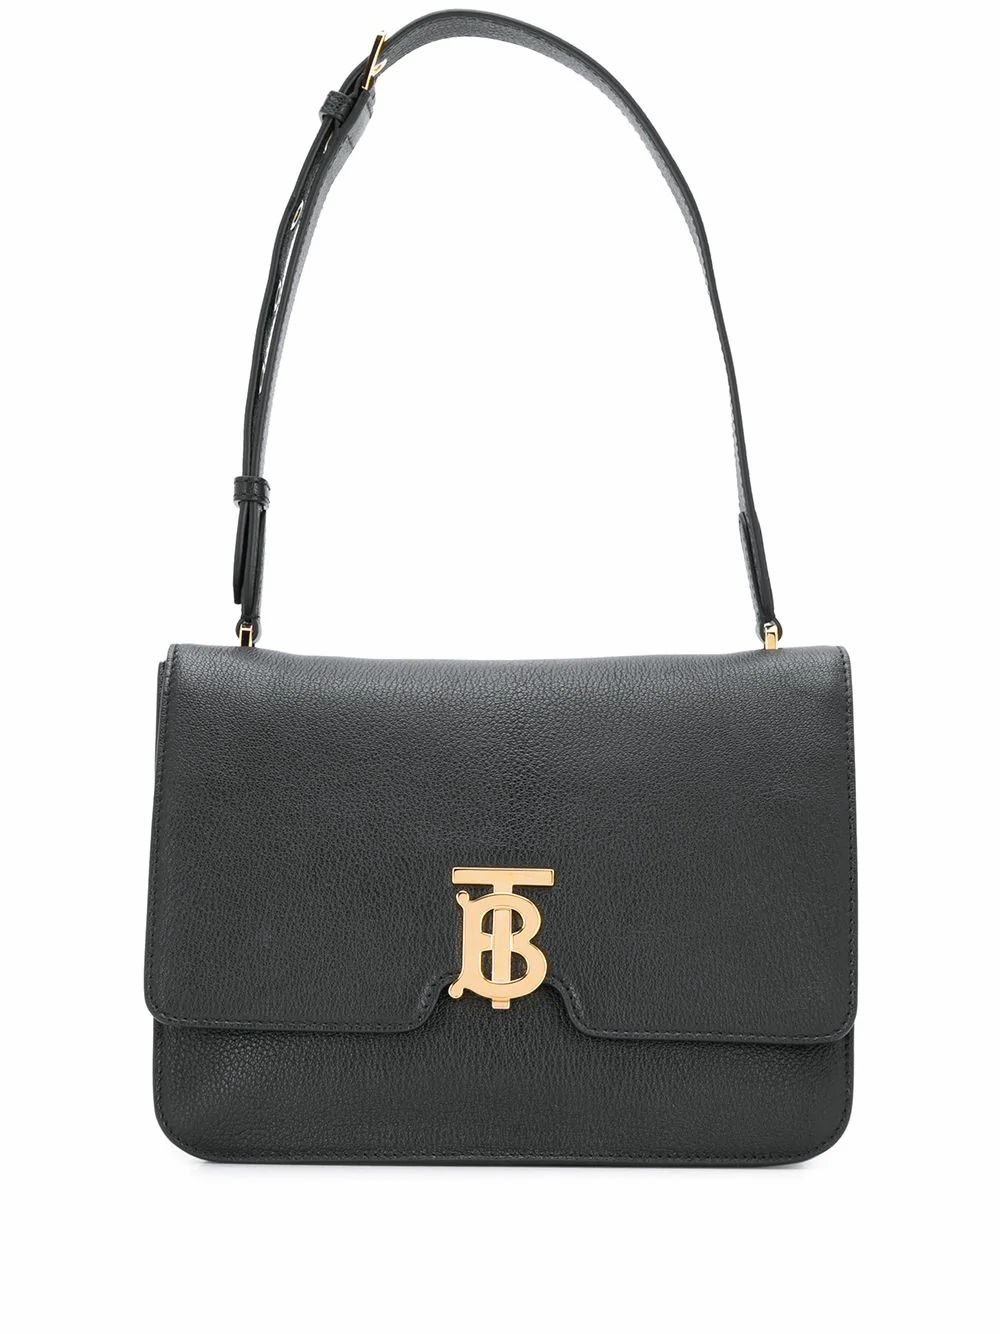 Burberry Leathers BURBERRY WOMEN'S BLACK LEATHER SHOULDER BAG